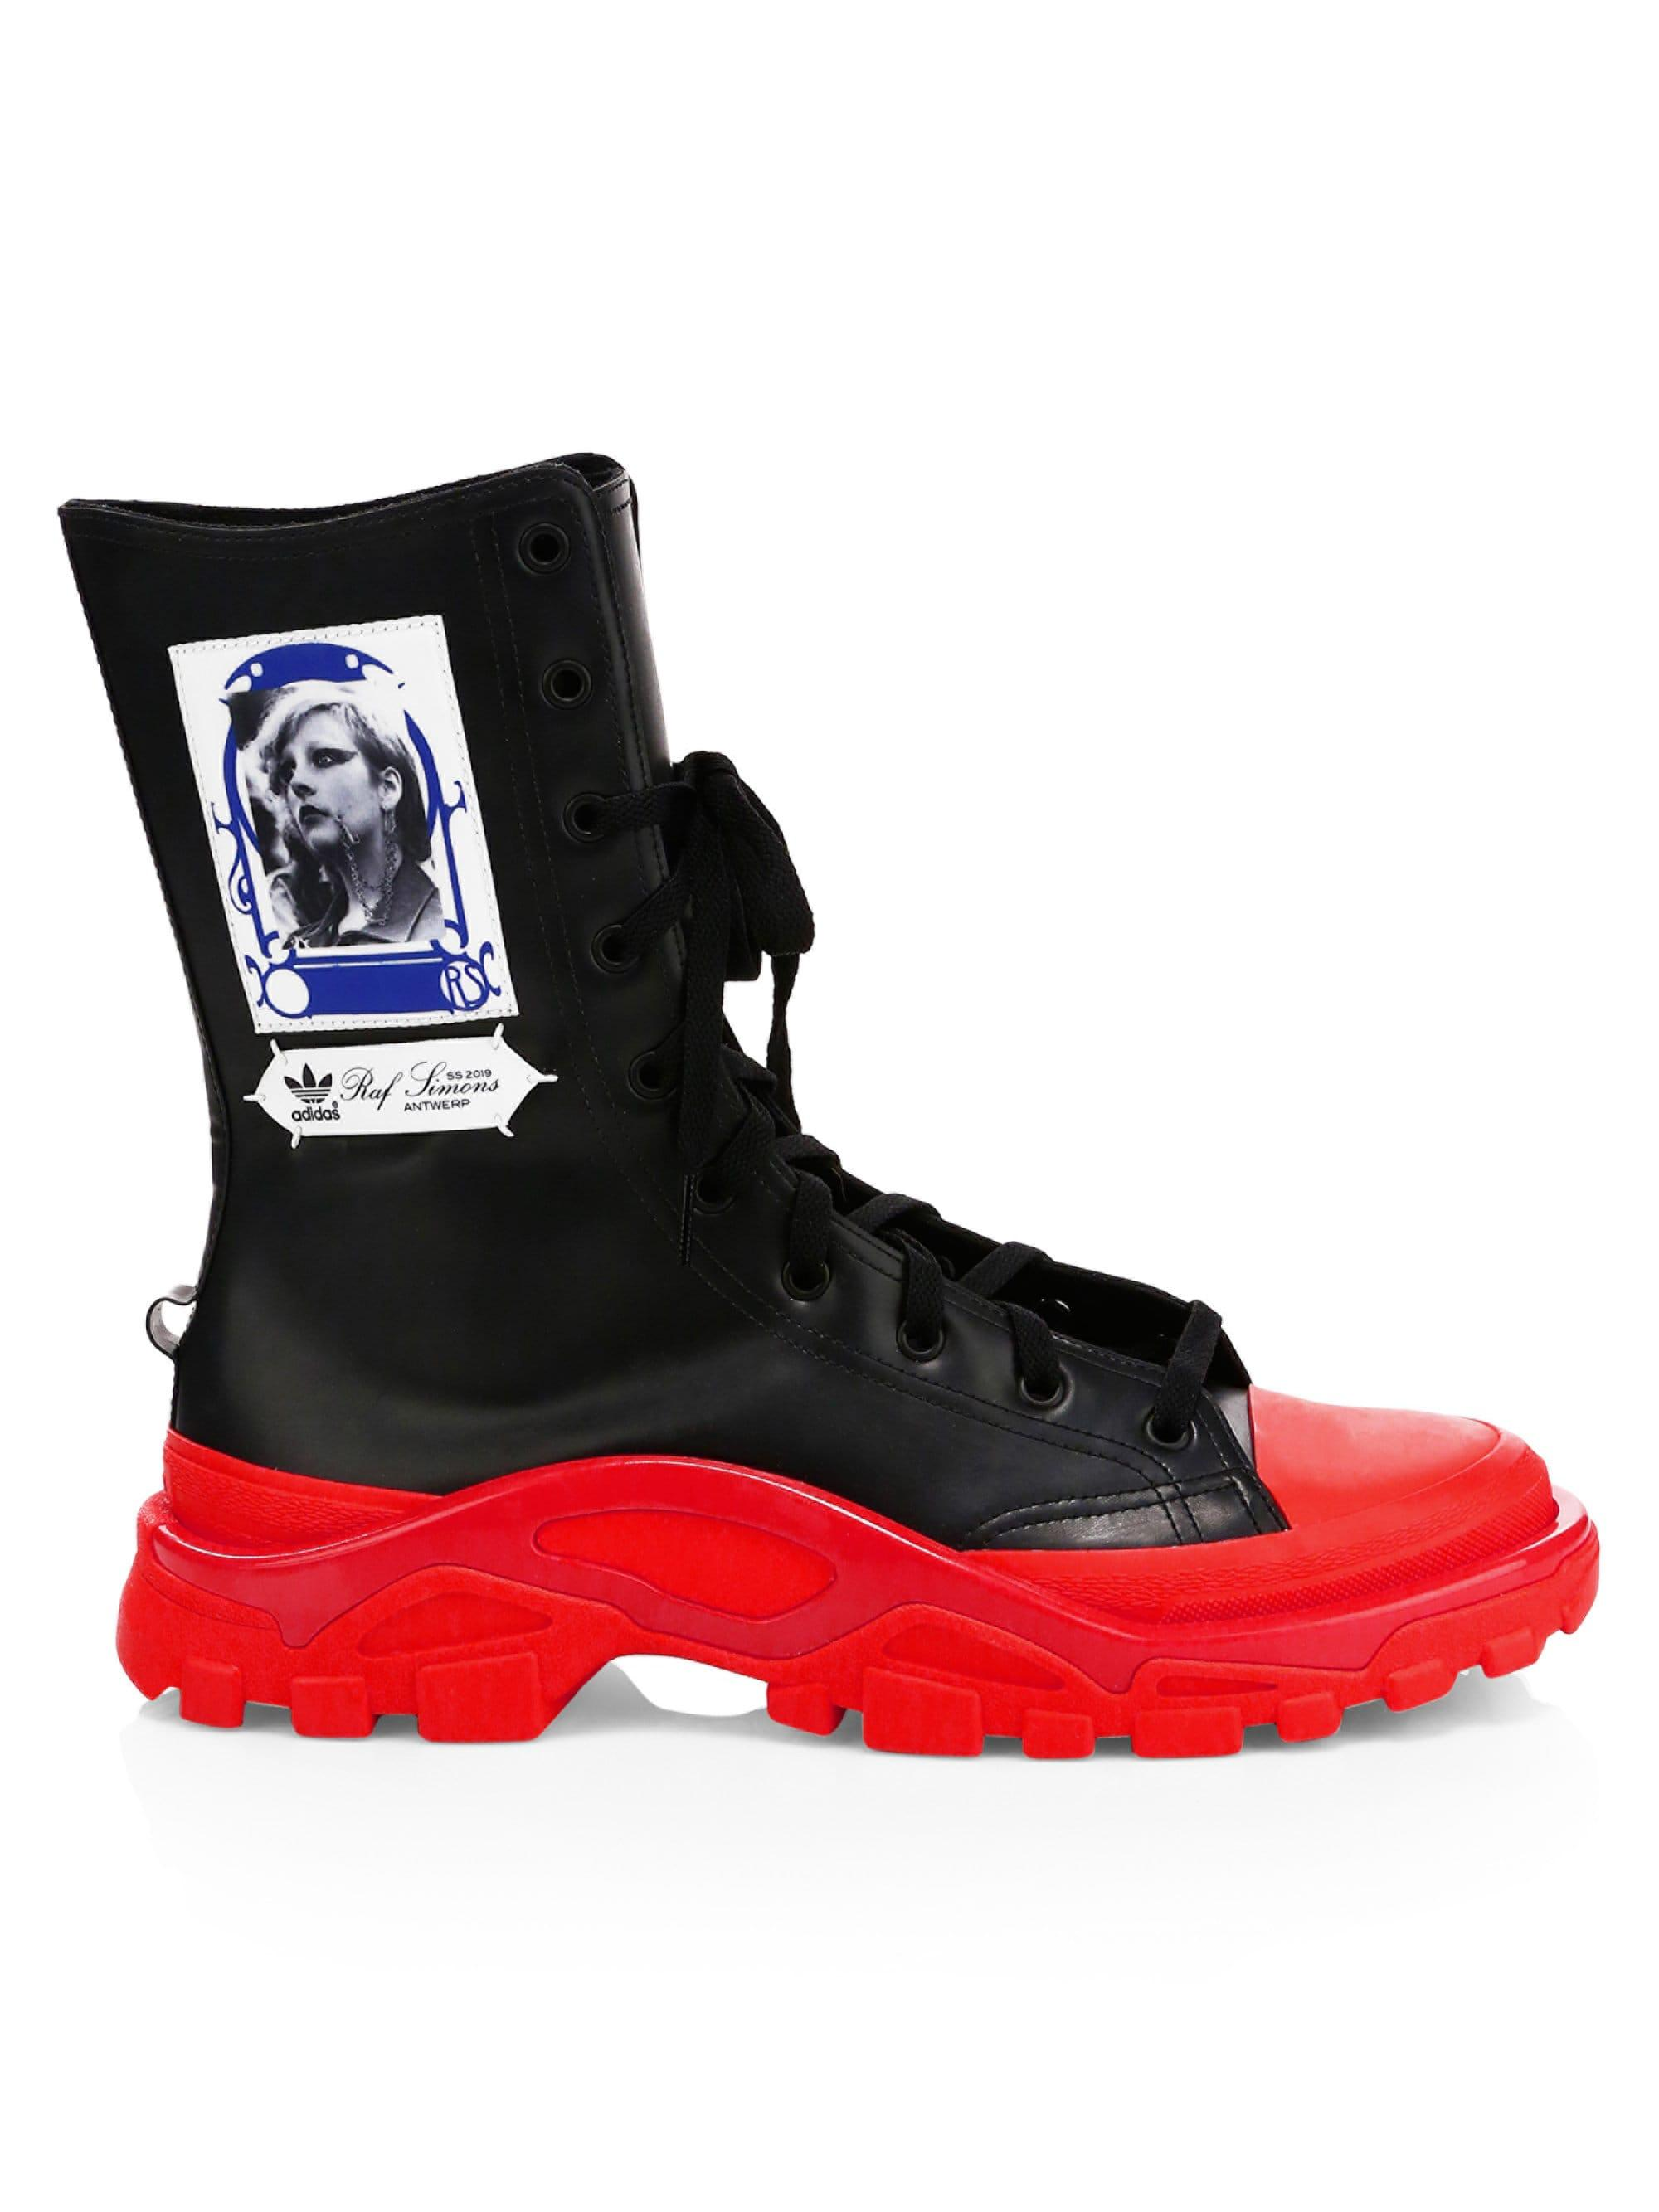 00a46ecb3e710c Lyst - adidas By Raf Simons Detroit High Boots in Black for Men